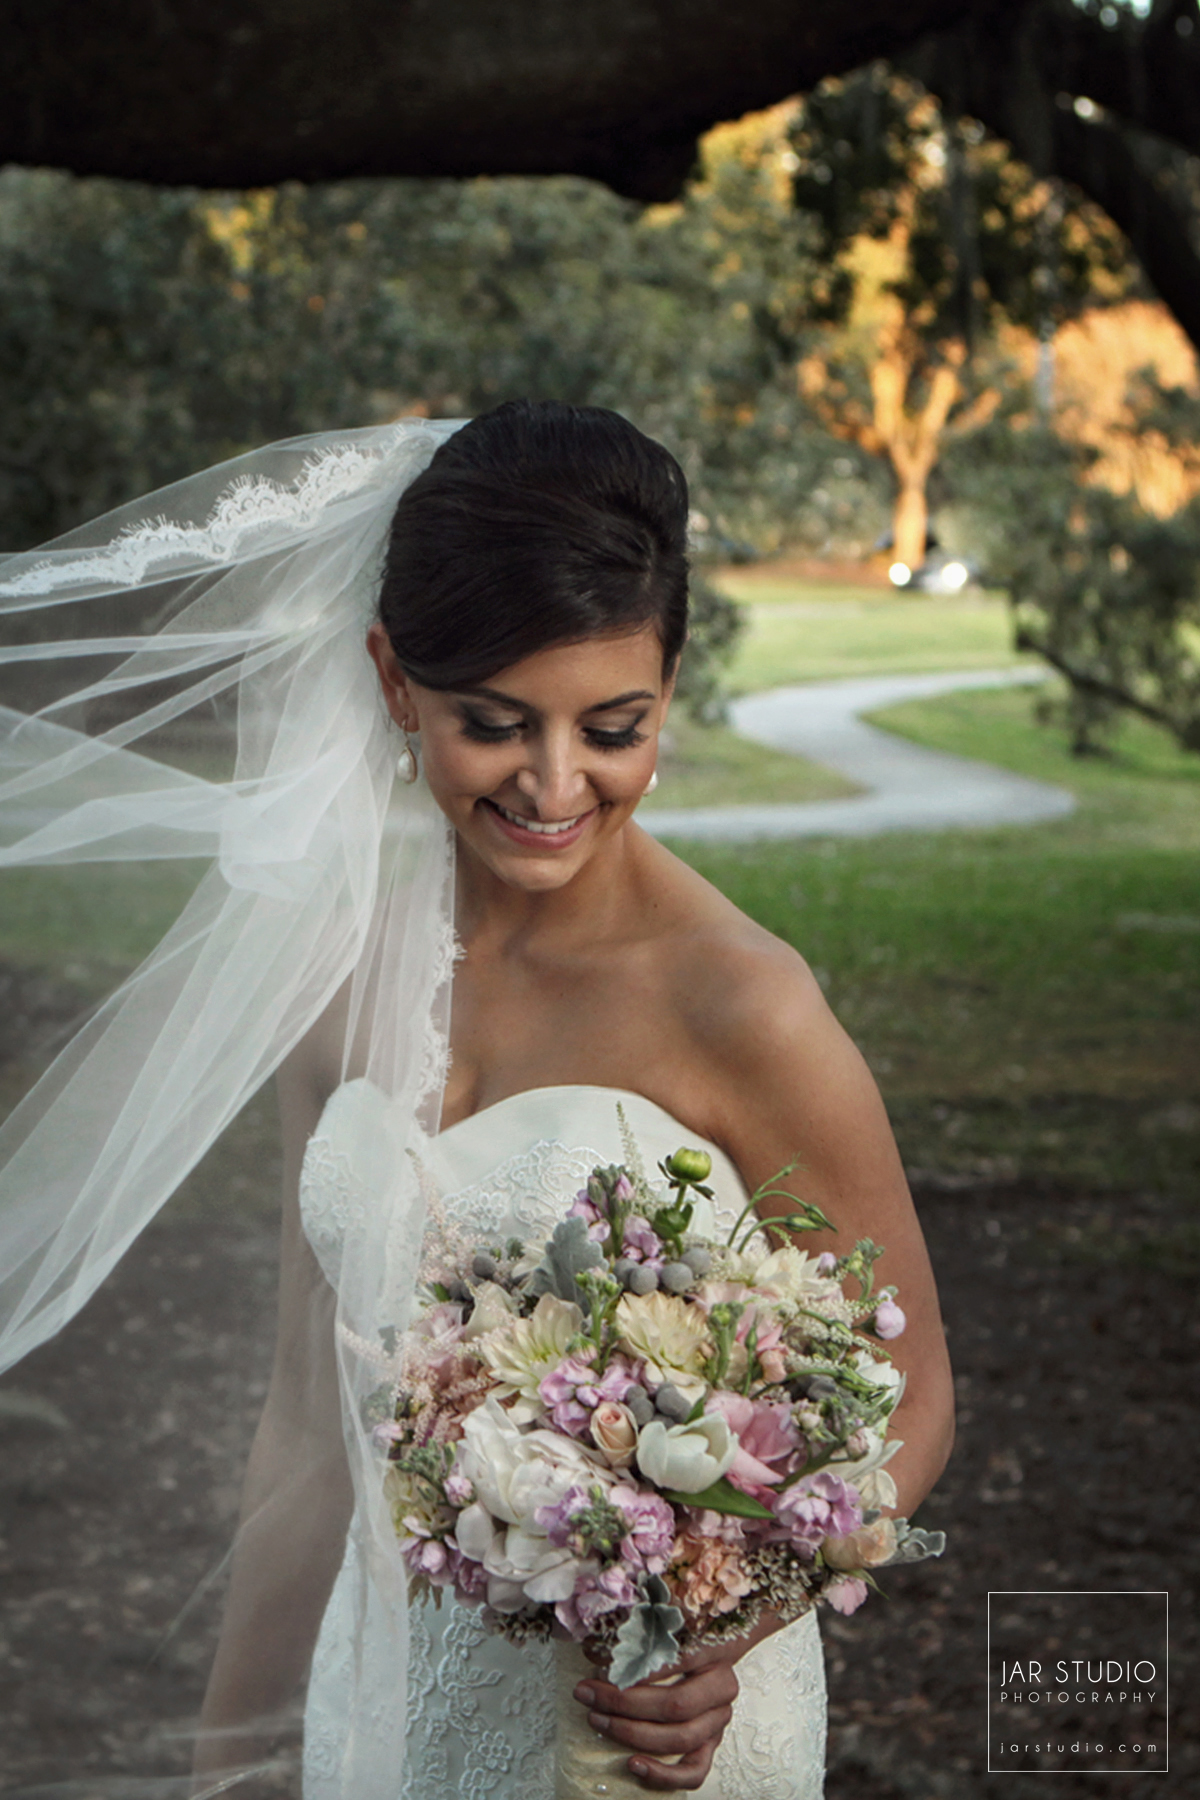 19-bride-portrait-bouquet-veil-jarstudio-wedding-photography-osc.JPG